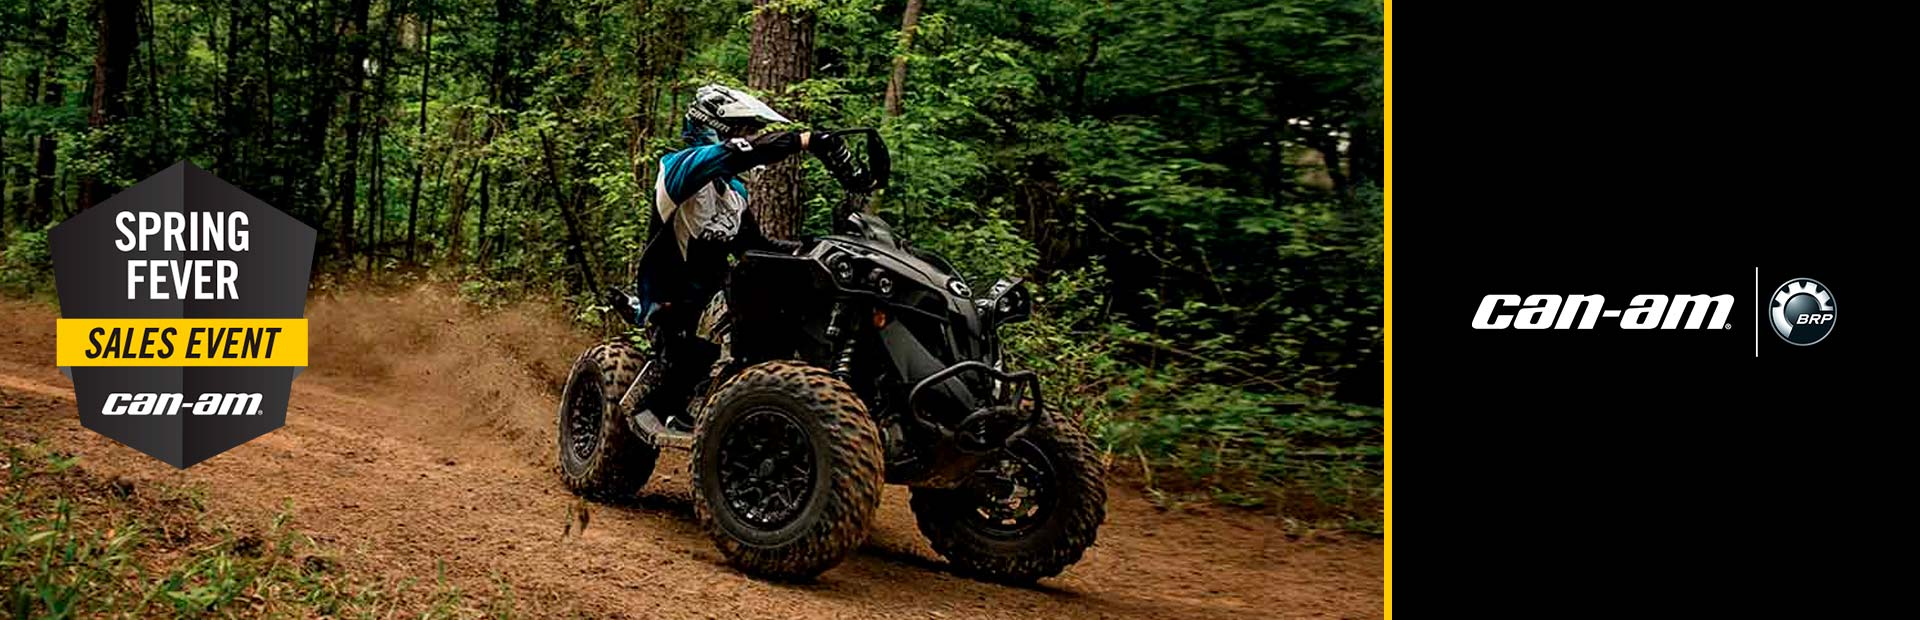 Can-Am: Spring Fever Sales Event-Renegade